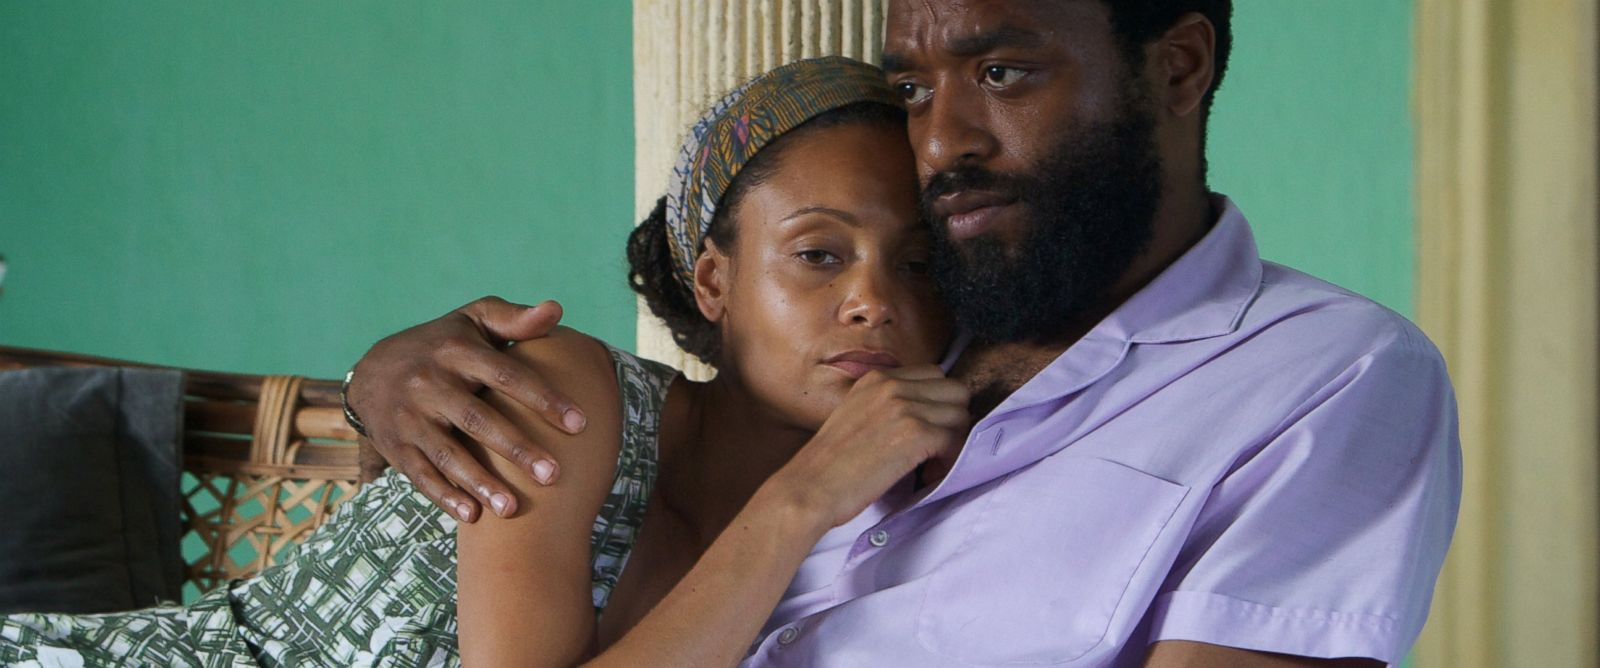 """PHOTO: Chiwetel Ejiofor in a film still from """"Half of a Yellow Sun."""""""